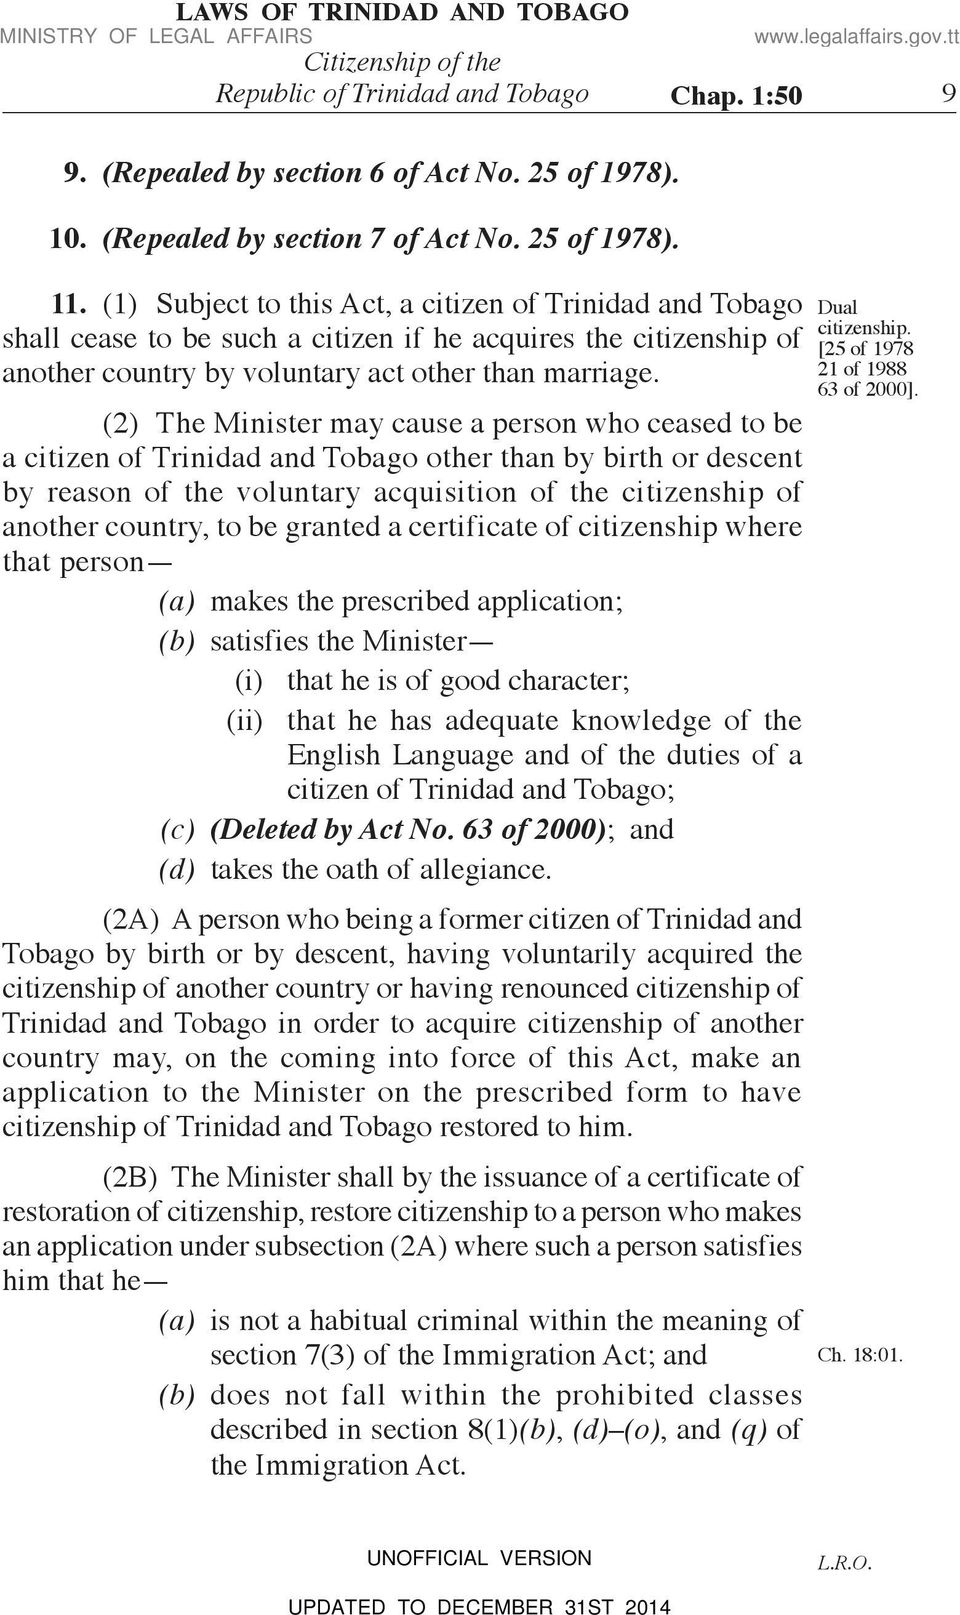 (2) The Minister may cause a person who ceased to be a citizen of Trinidad and Tobago other than by birth or descent by reason of the voluntary acquisition of the citizenship of another country, to